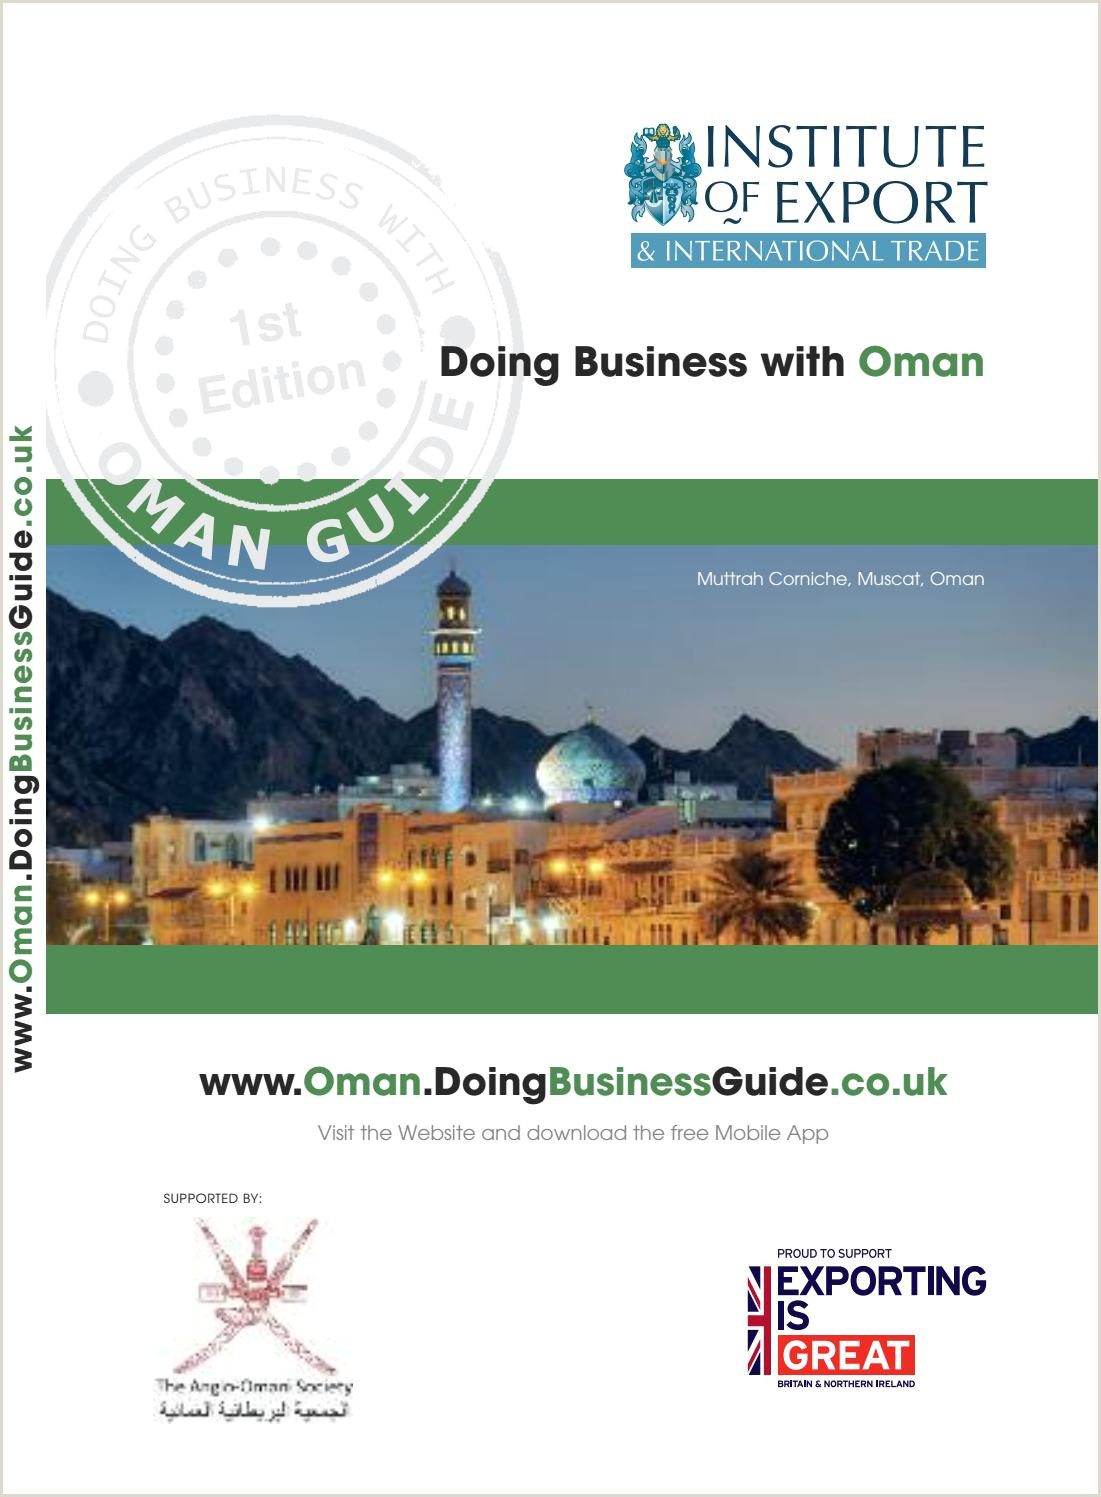 Best Business Cards For Bad Personal Capital Management Doing Business With Oman Guide By Doing Business Guides Issuu